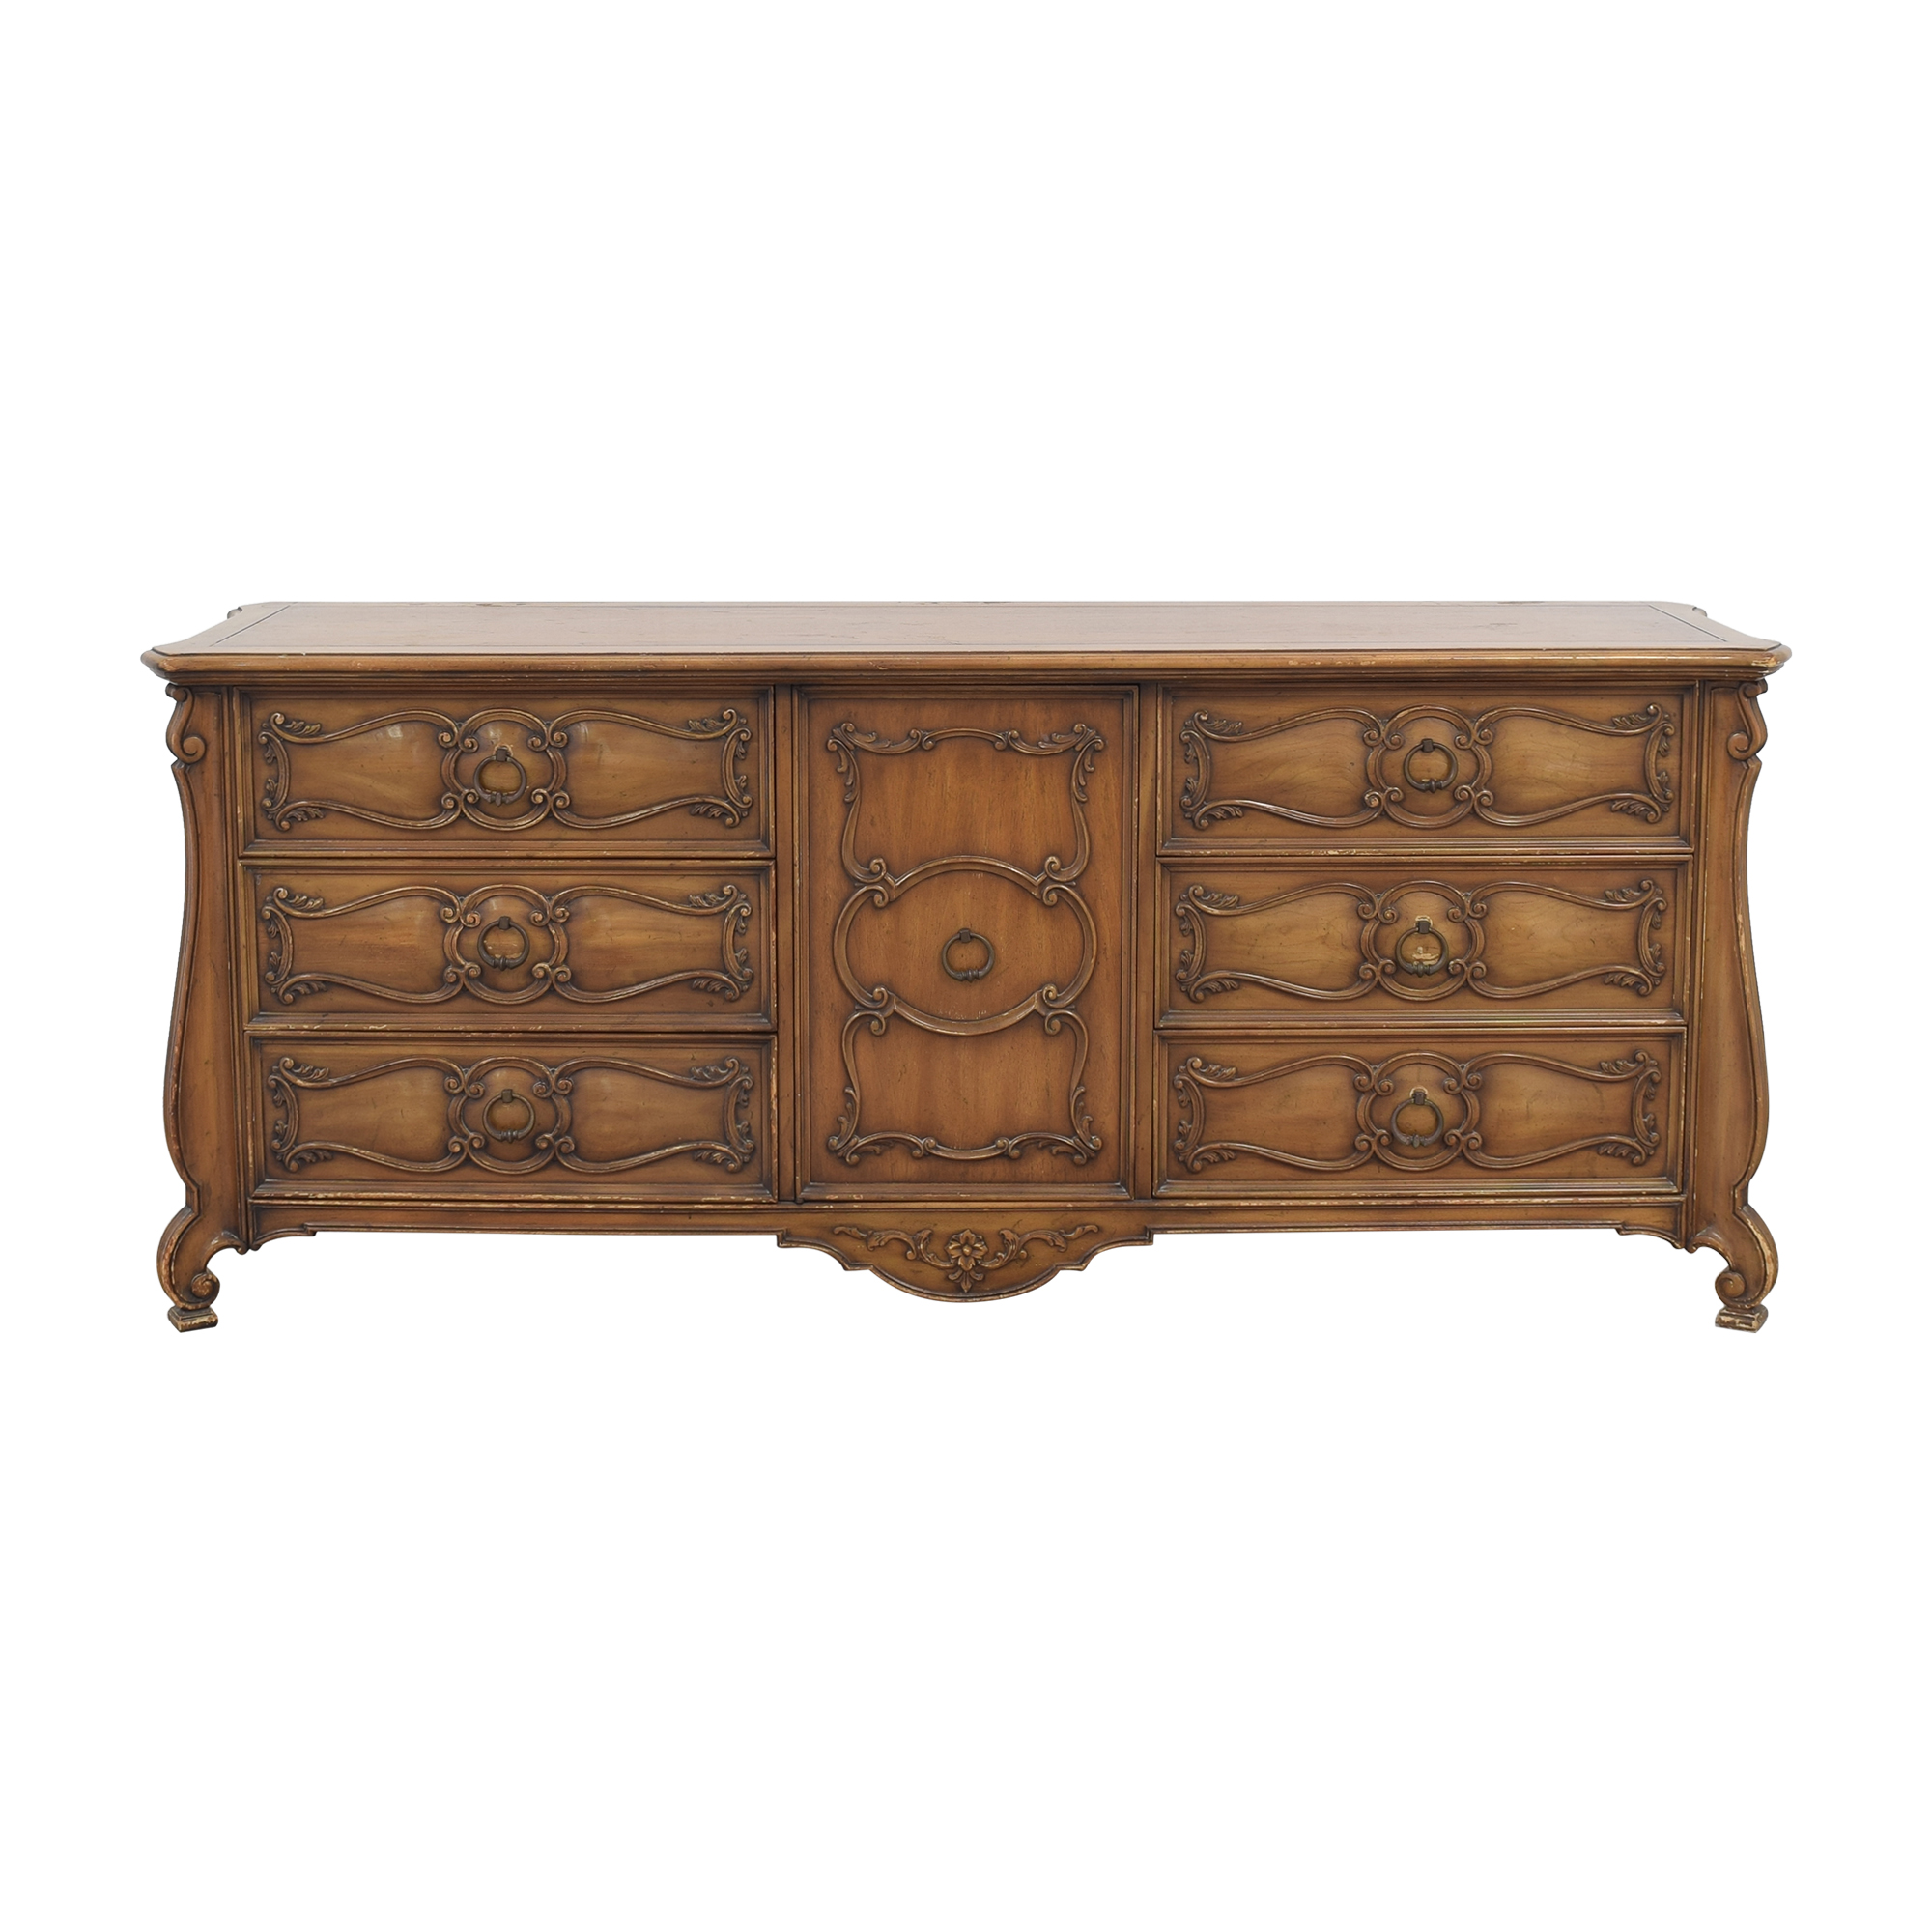 buy Mastercraft Credenza Dresser with Cabinet Mastercraft Furniture